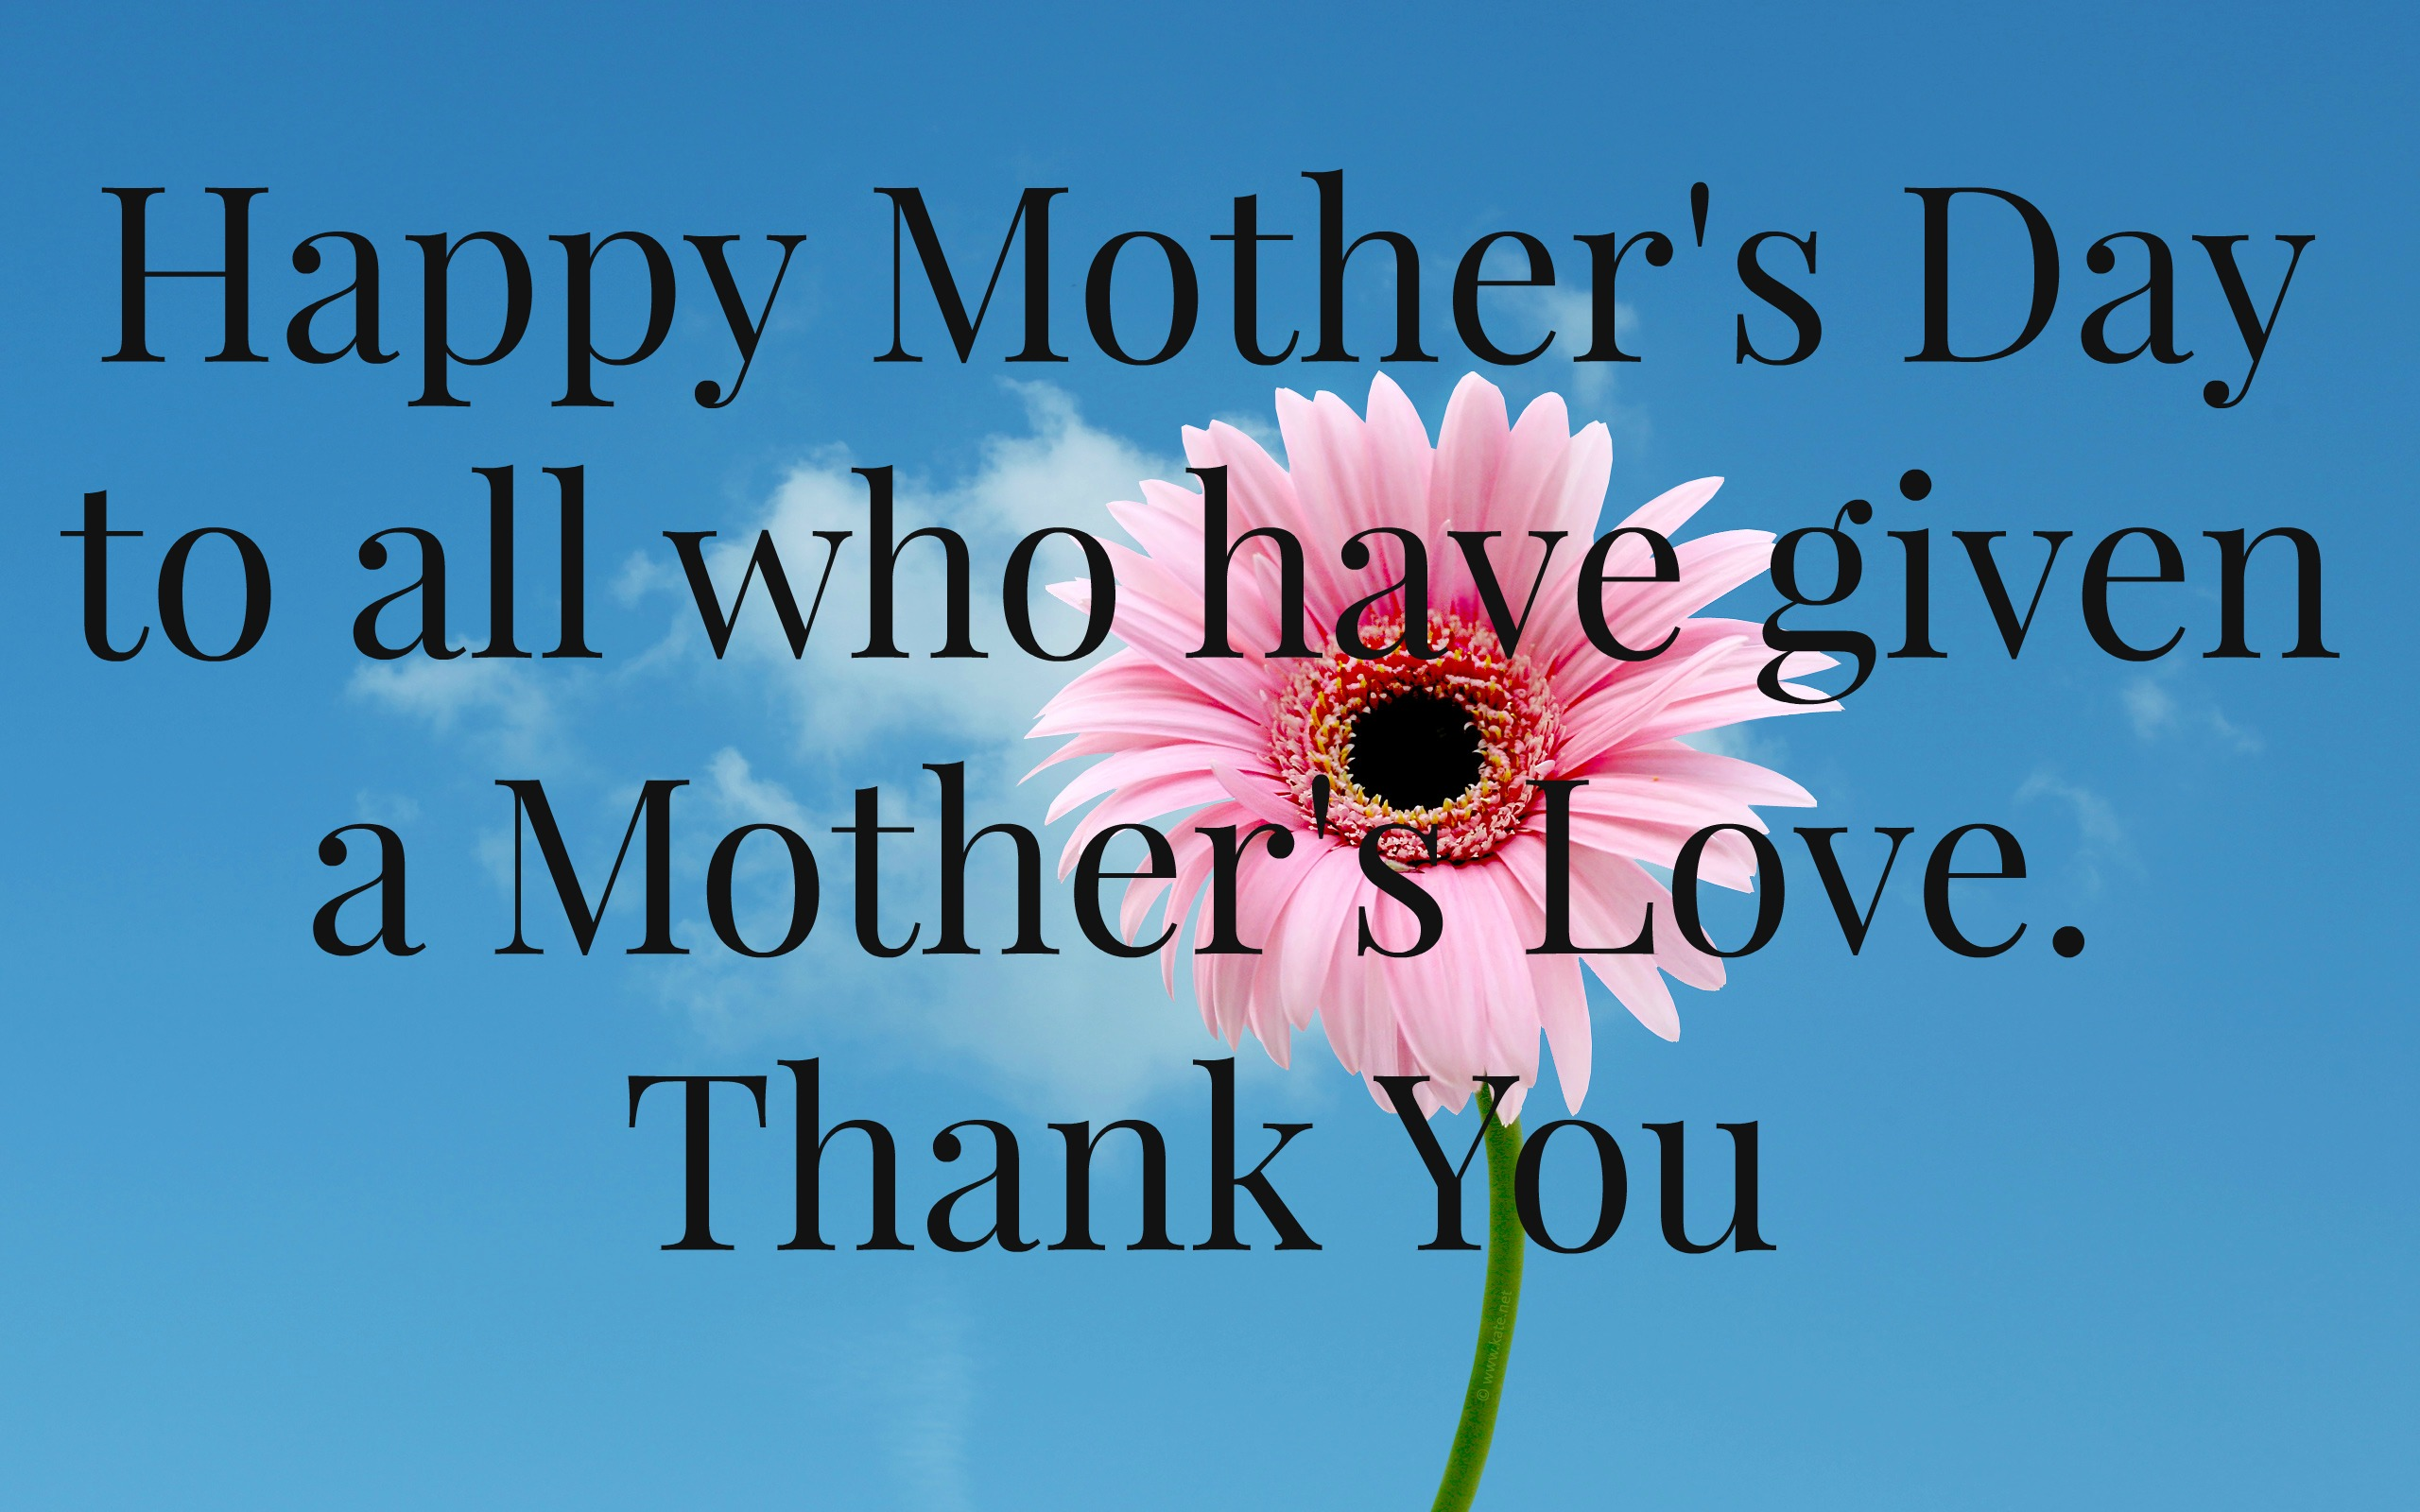 dd mothers day ver - 1024×640